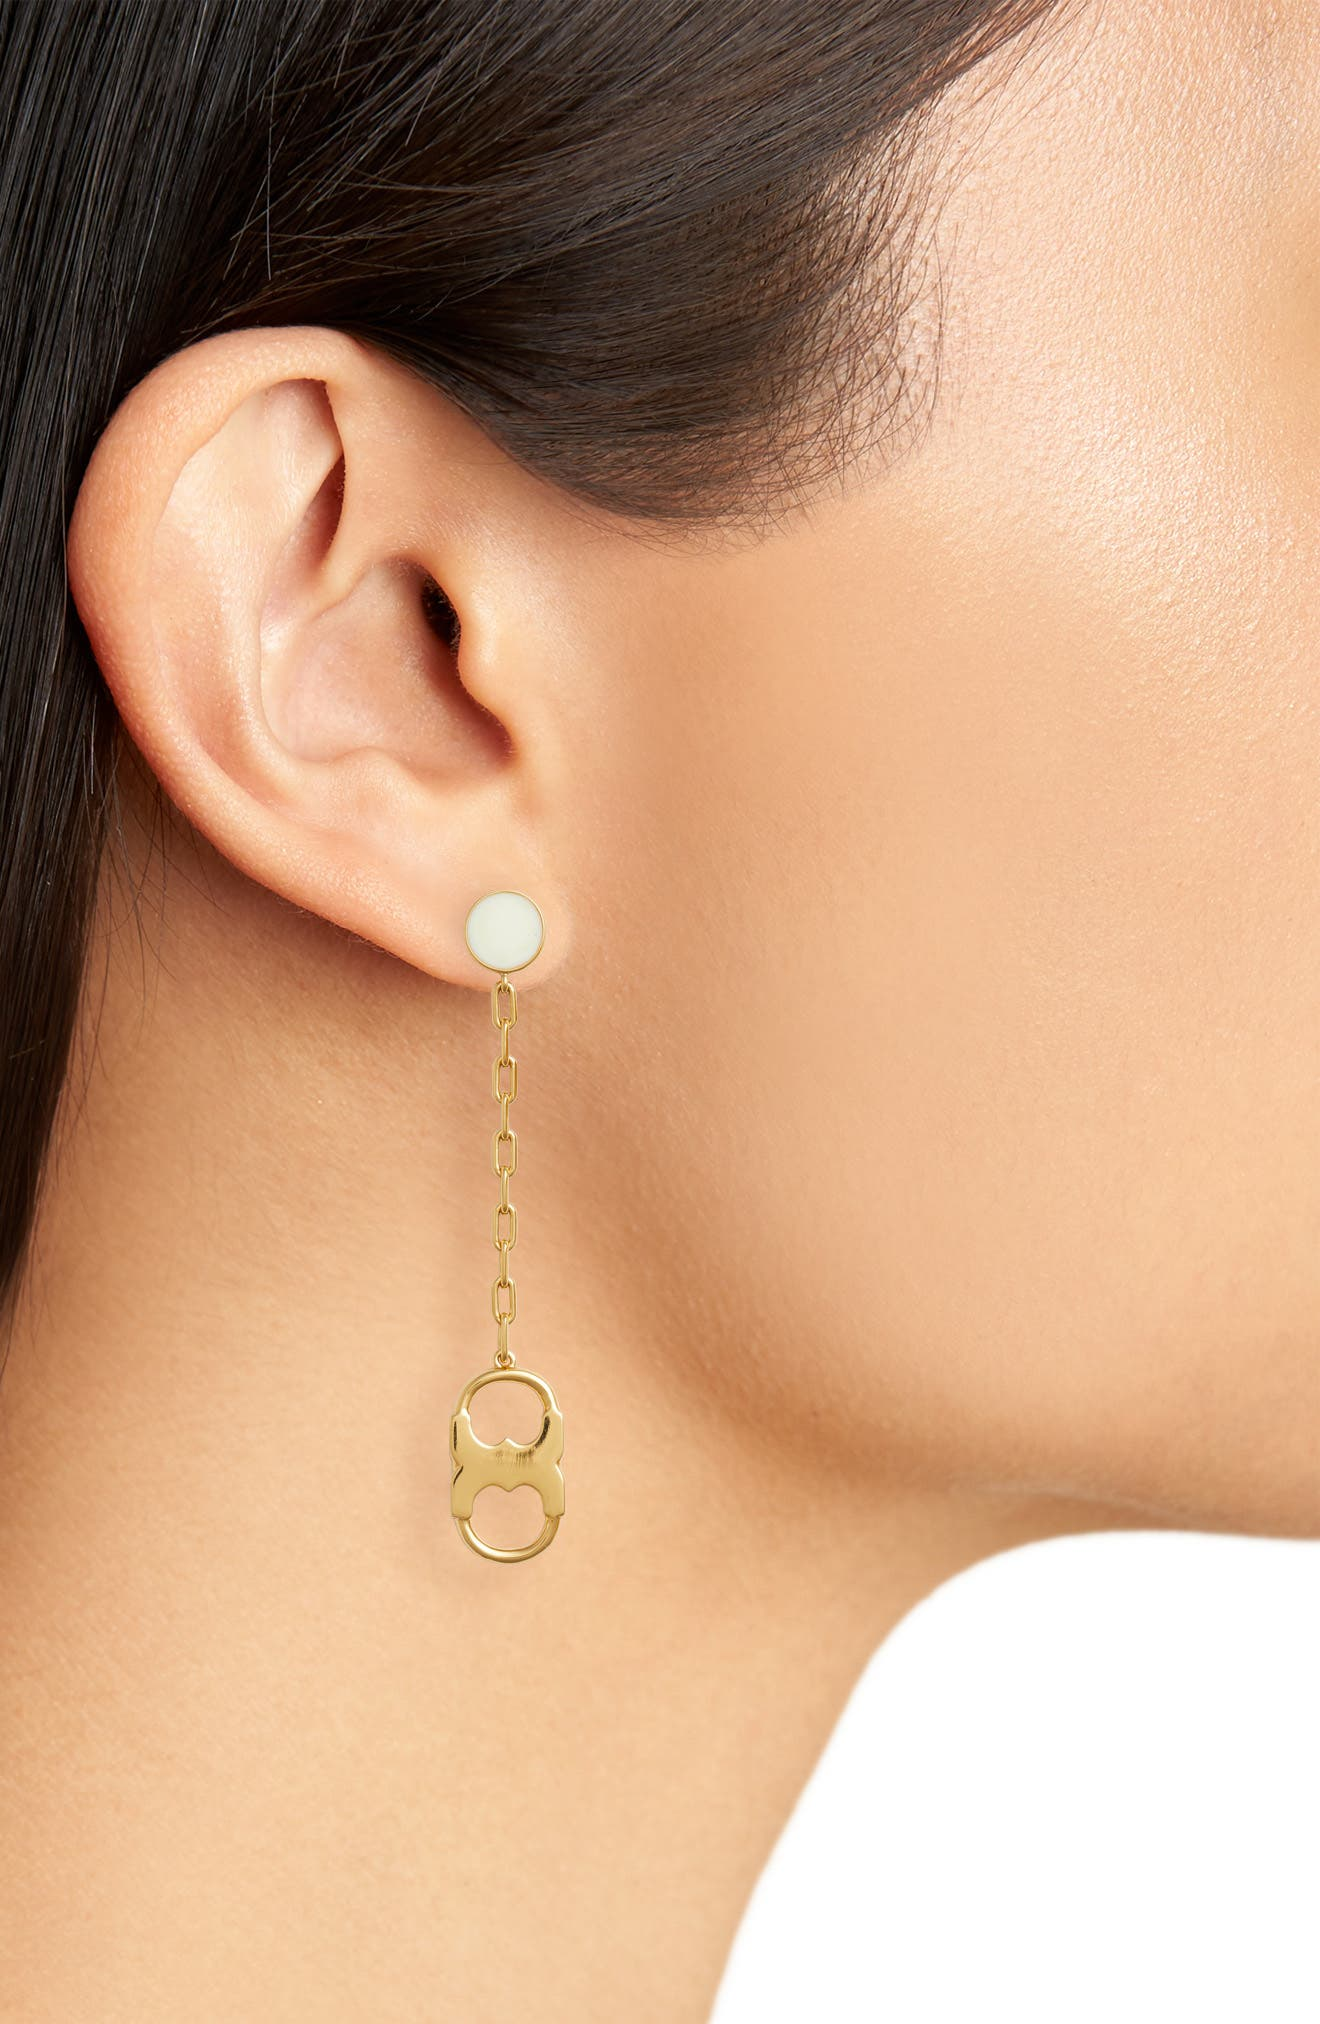 Gemini Link Drop Earrings,                             Alternate thumbnail 2, color,                             900